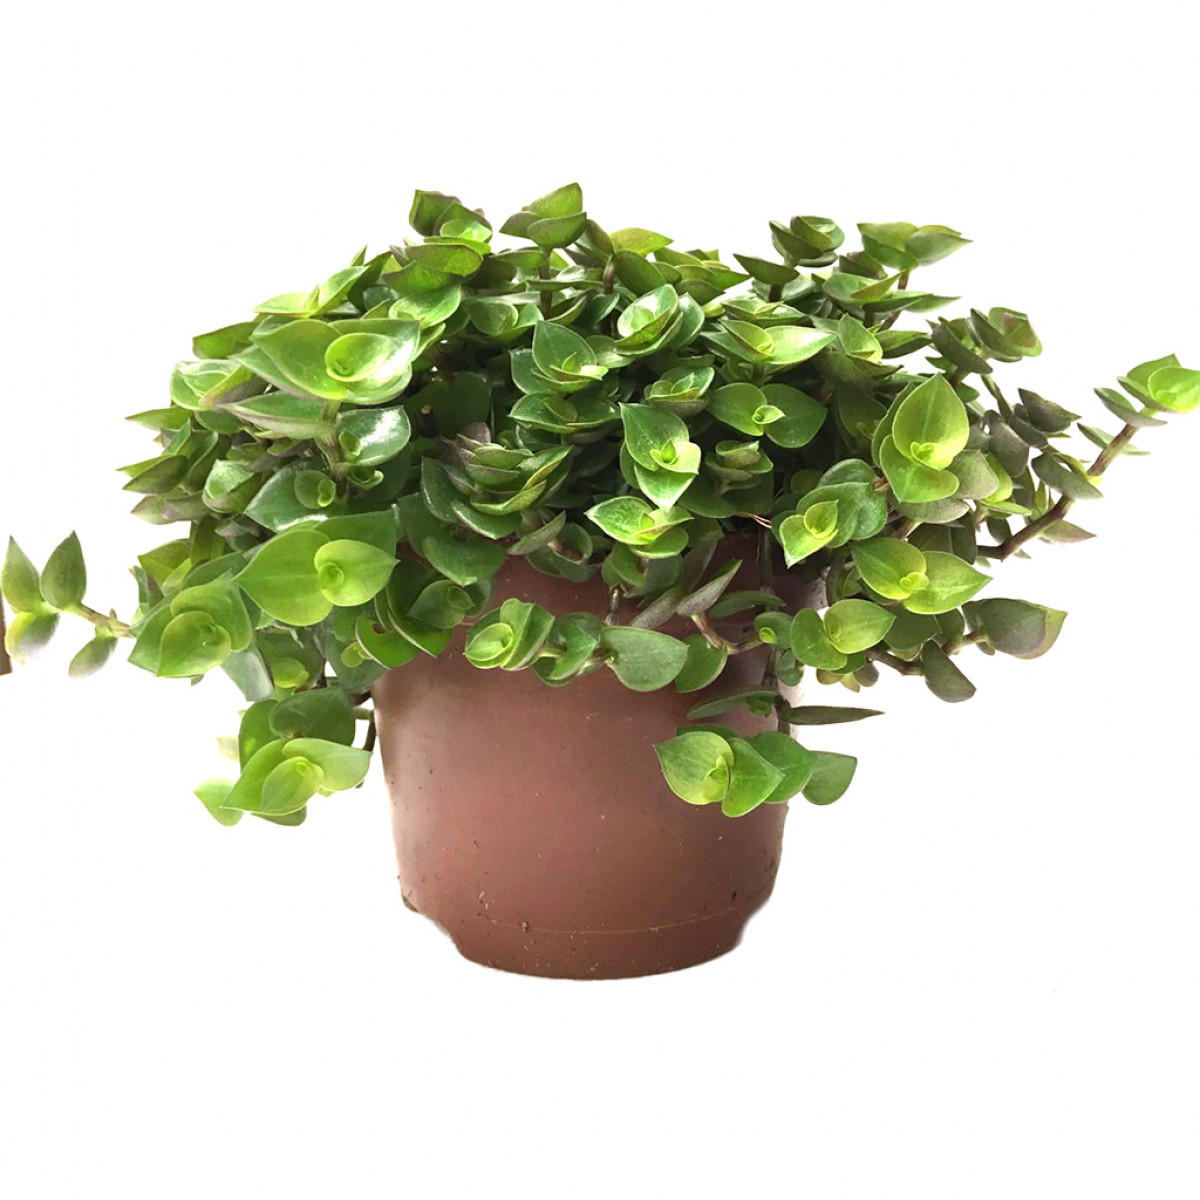 HabiStat Edible Plants - Turtle Vine (Callisia Repens), Large